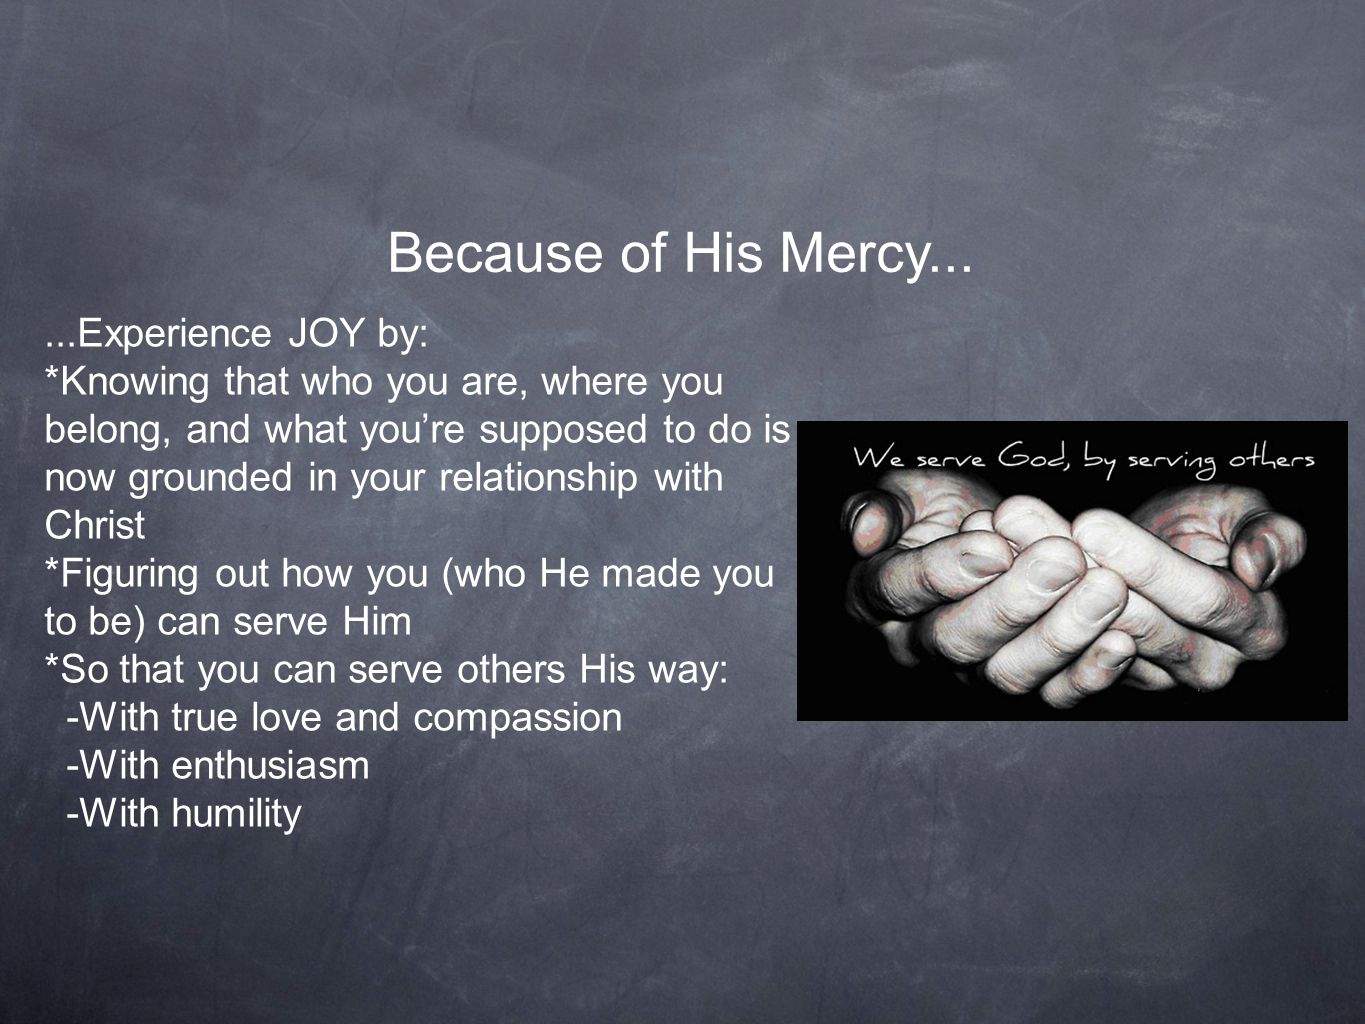 Because of His Mercy......Experience JOY by: *Knowing that who you are, where you belong, and what you're supposed to do is now grounded in your relationship with Christ *Figuring out how you (who He made you to be) can serve Him *So that you can serve others His way: -With true love and compassion -With enthusiasm -With humility